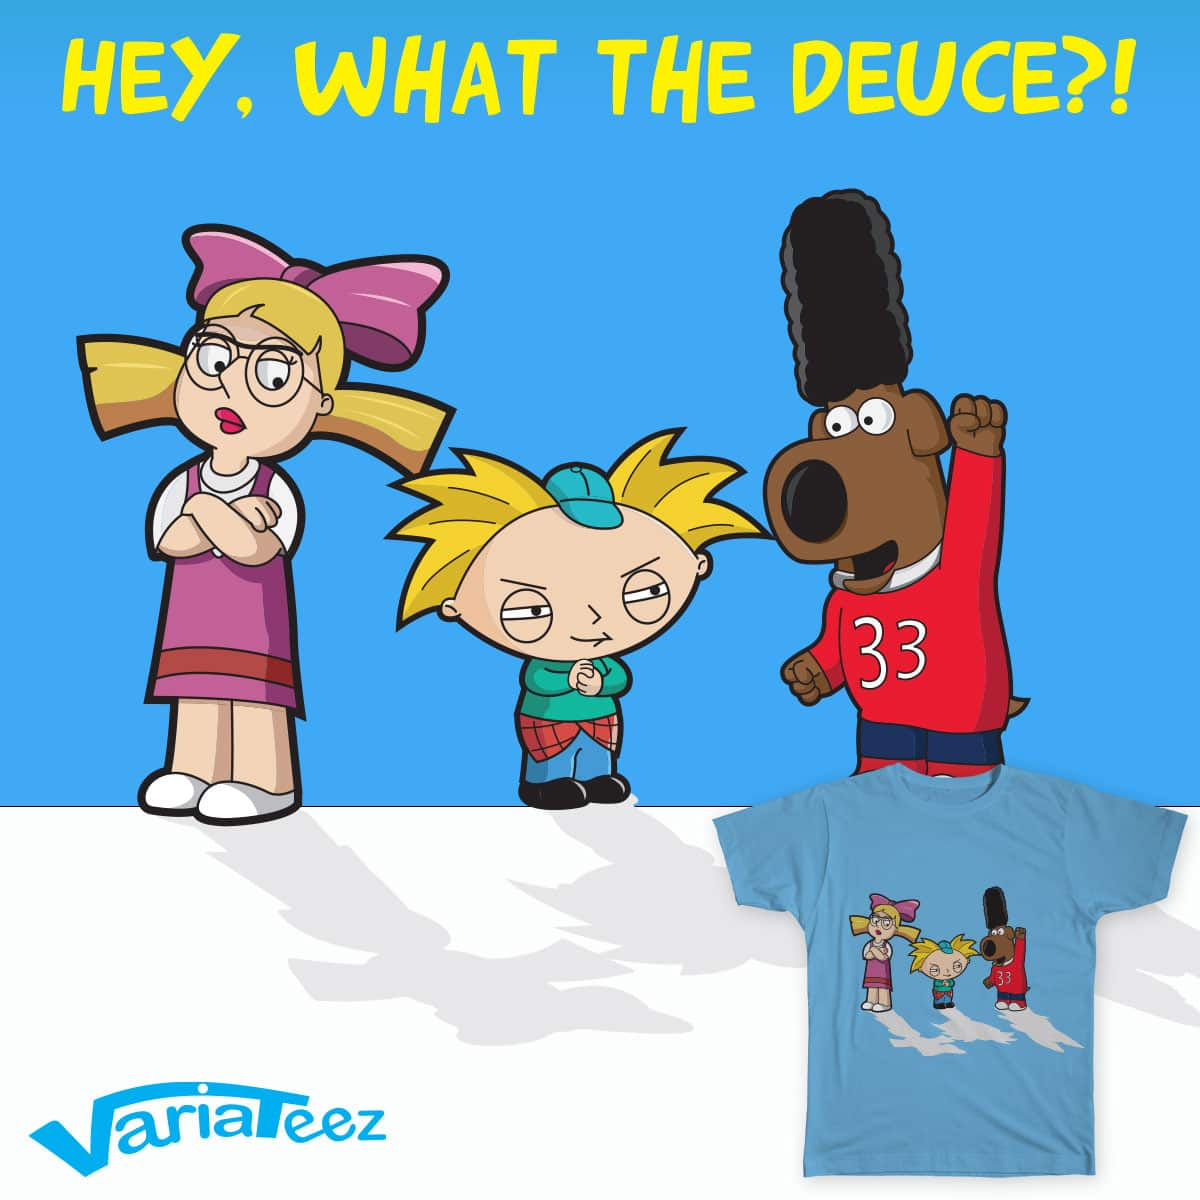 Hey, what the deuce?! by VarieTeez on Threadless